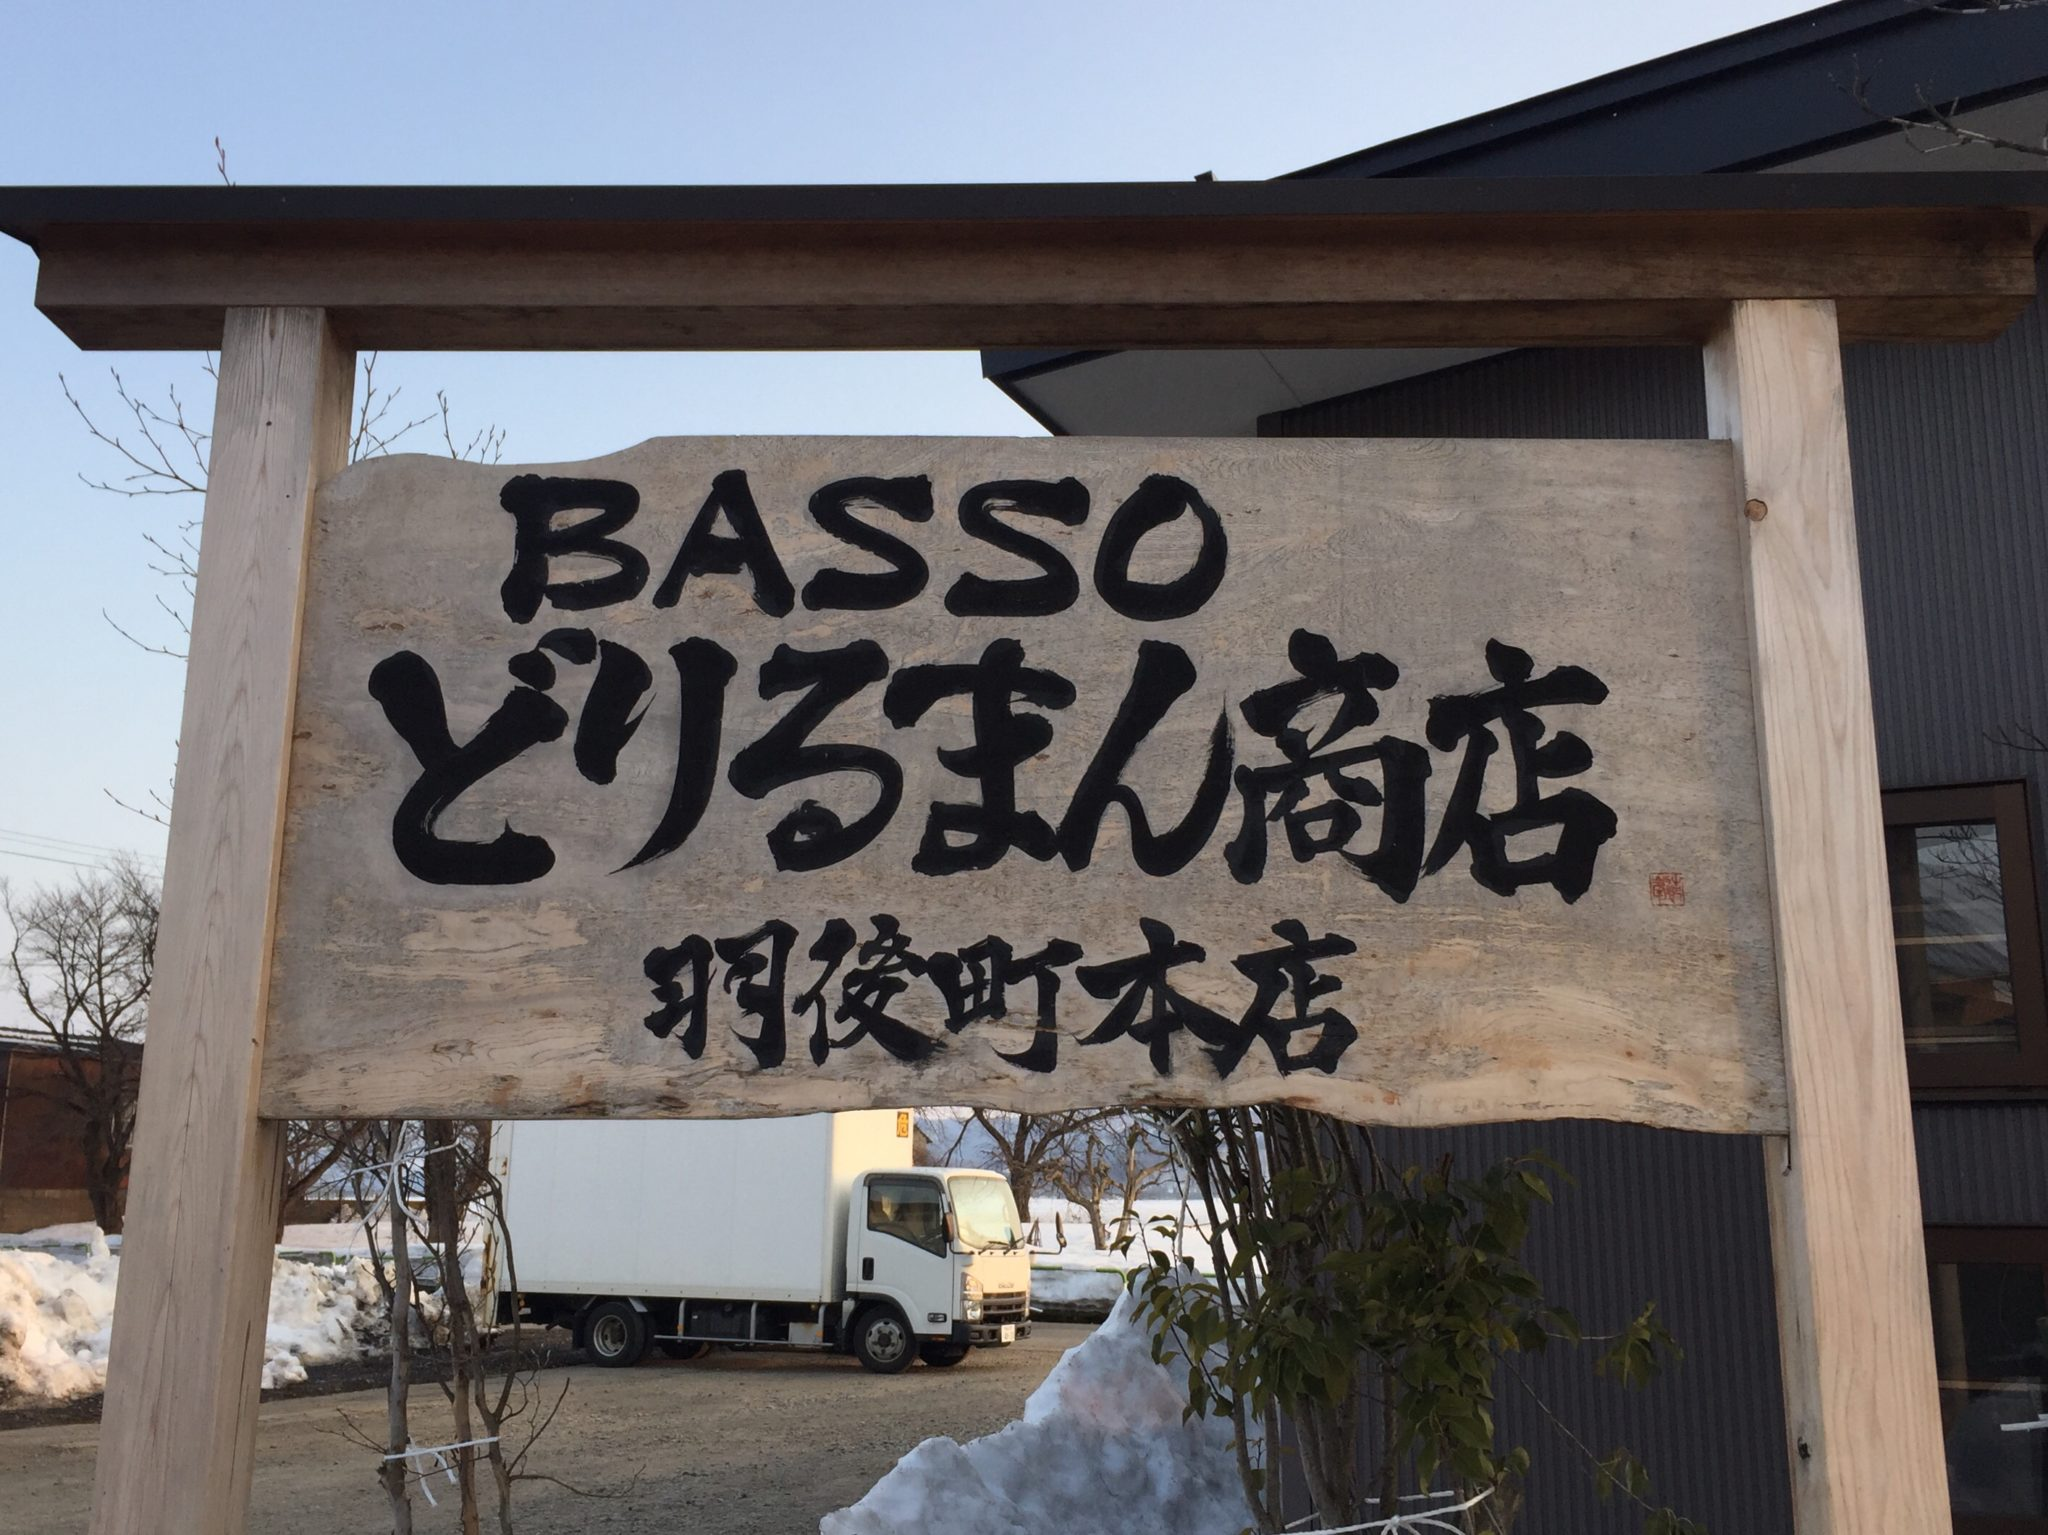 BASSOどりるまん商店 羽後町本店 秋田県雄勝郡羽後町 看板